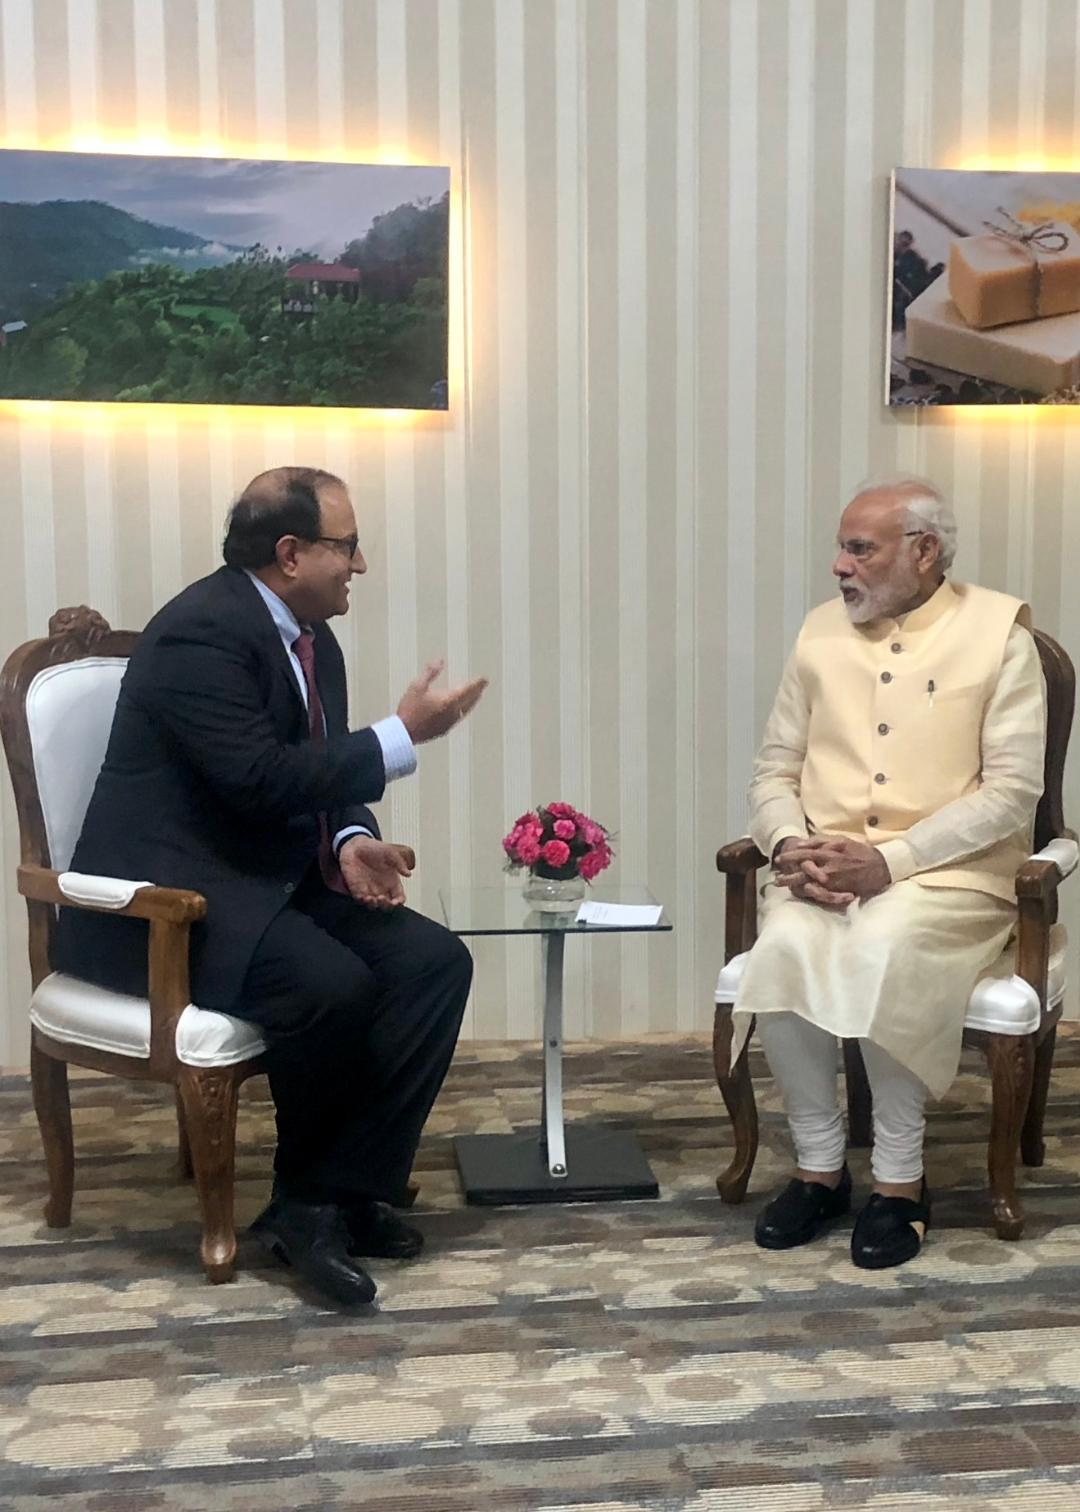 Minister-in-Charge of Trade Relations of Singapore S Iswaran meeting Prime Minister Narendra Modi. Photo courtesy: Ministry of Trade and Industry, Singapore